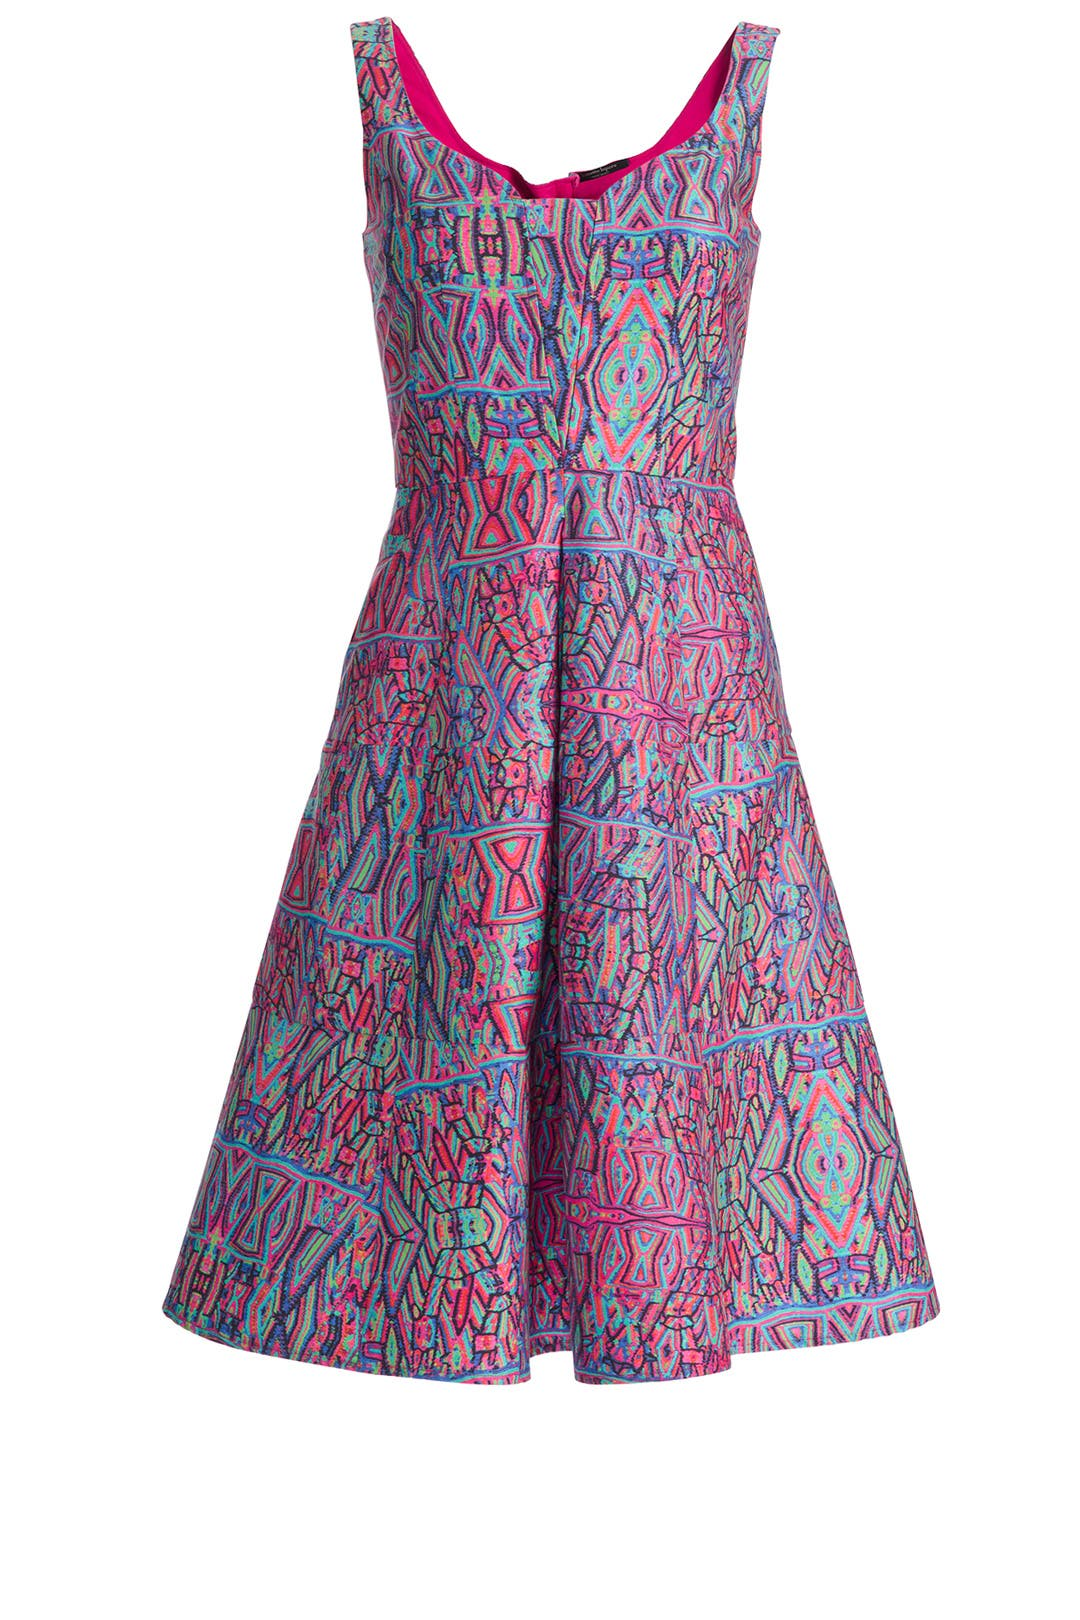 Cathedral Dress by Nanette Lepore for $55 - $75 | Rent the Runway